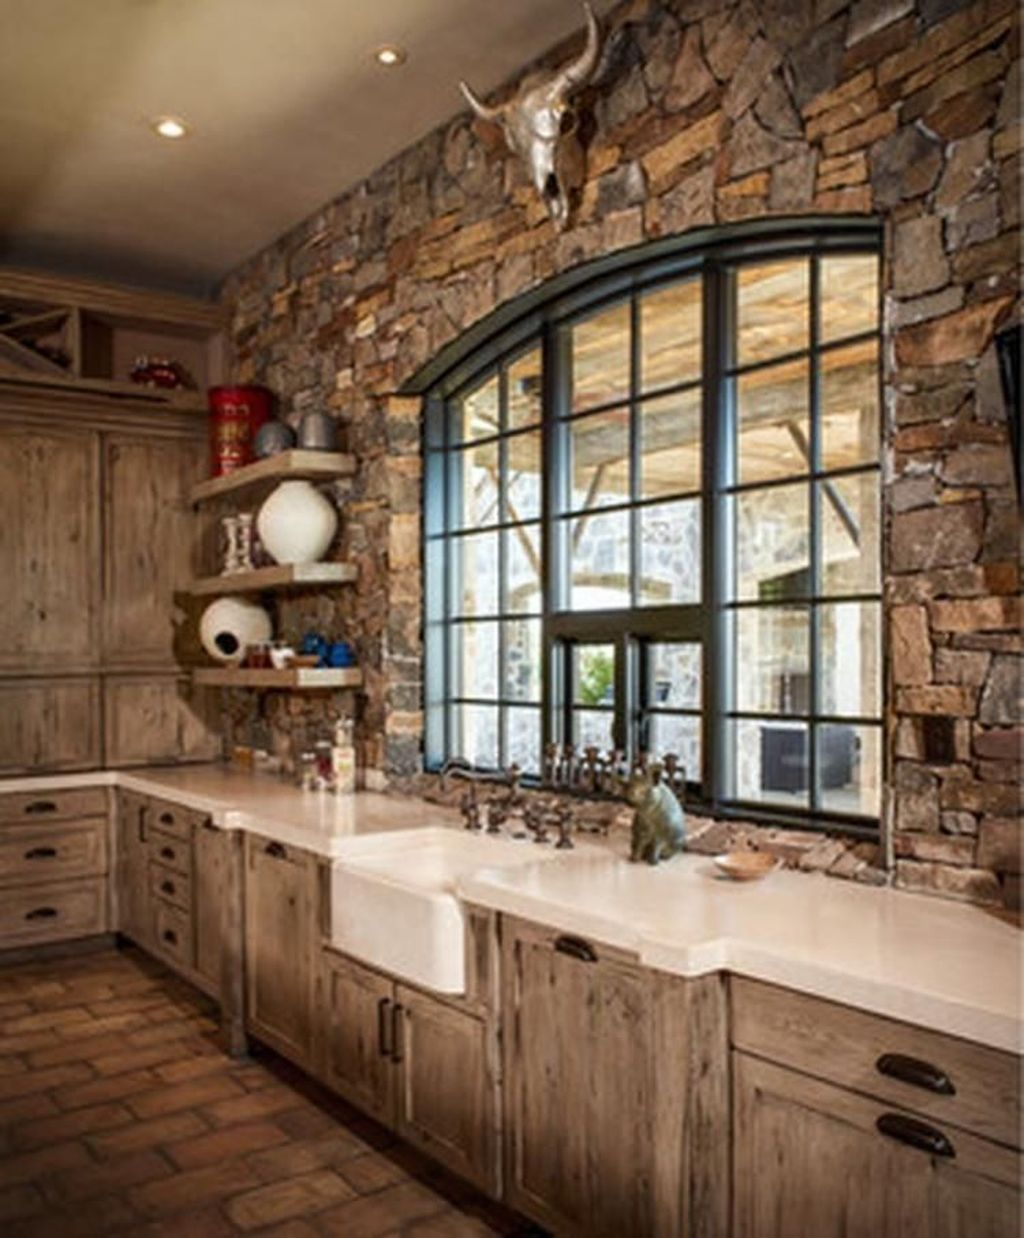 Cowboy Kitchen: 42 Lovely Rustic Western Style Kitchen Decorations Ideas